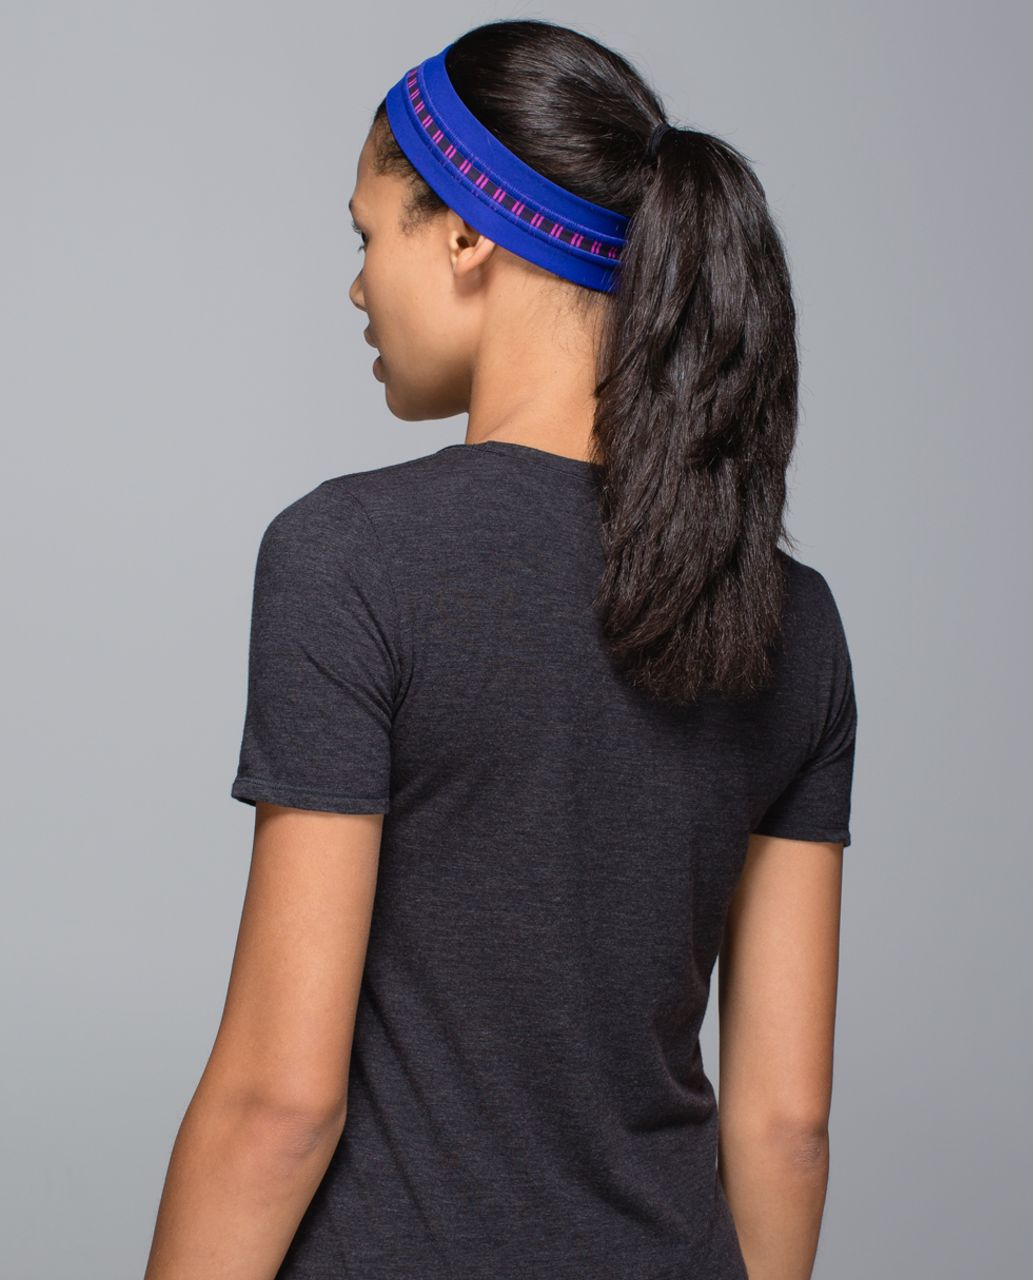 Lululemon Fly Away Tamer Headband - Pigment Blue / Double Trouble Stripe Ultra Violet Black Grape